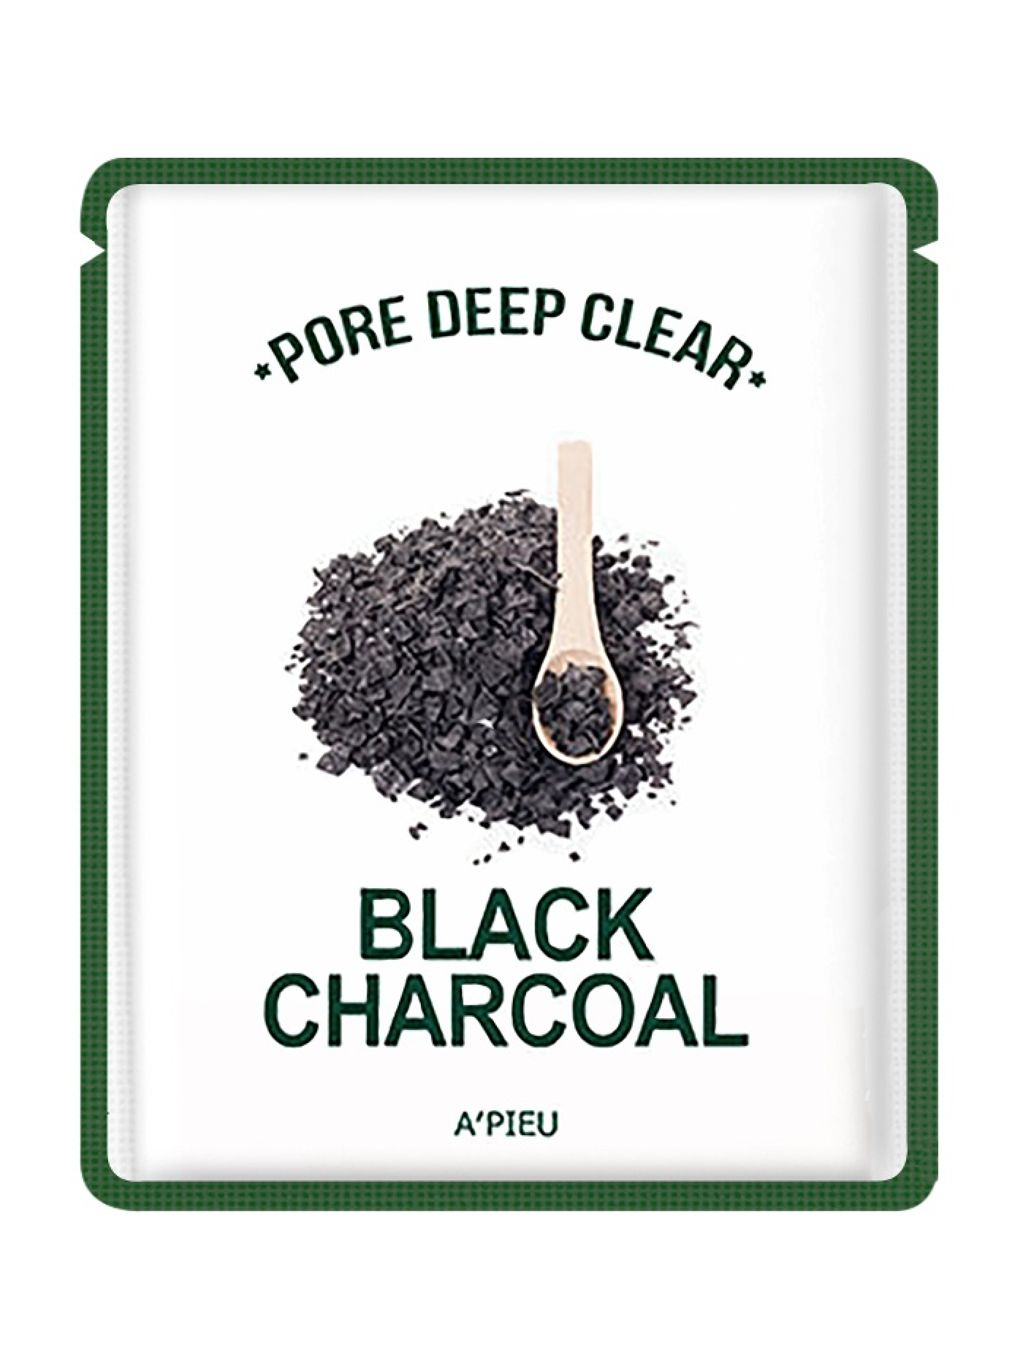 A'PIEU PORE DEEP CLEAR BLACK CHARCOAL MUD MASK - 274ae-Apieu_BlackCharcol_FaceMask__79972.1478549538.1280.1280-copia.jpg